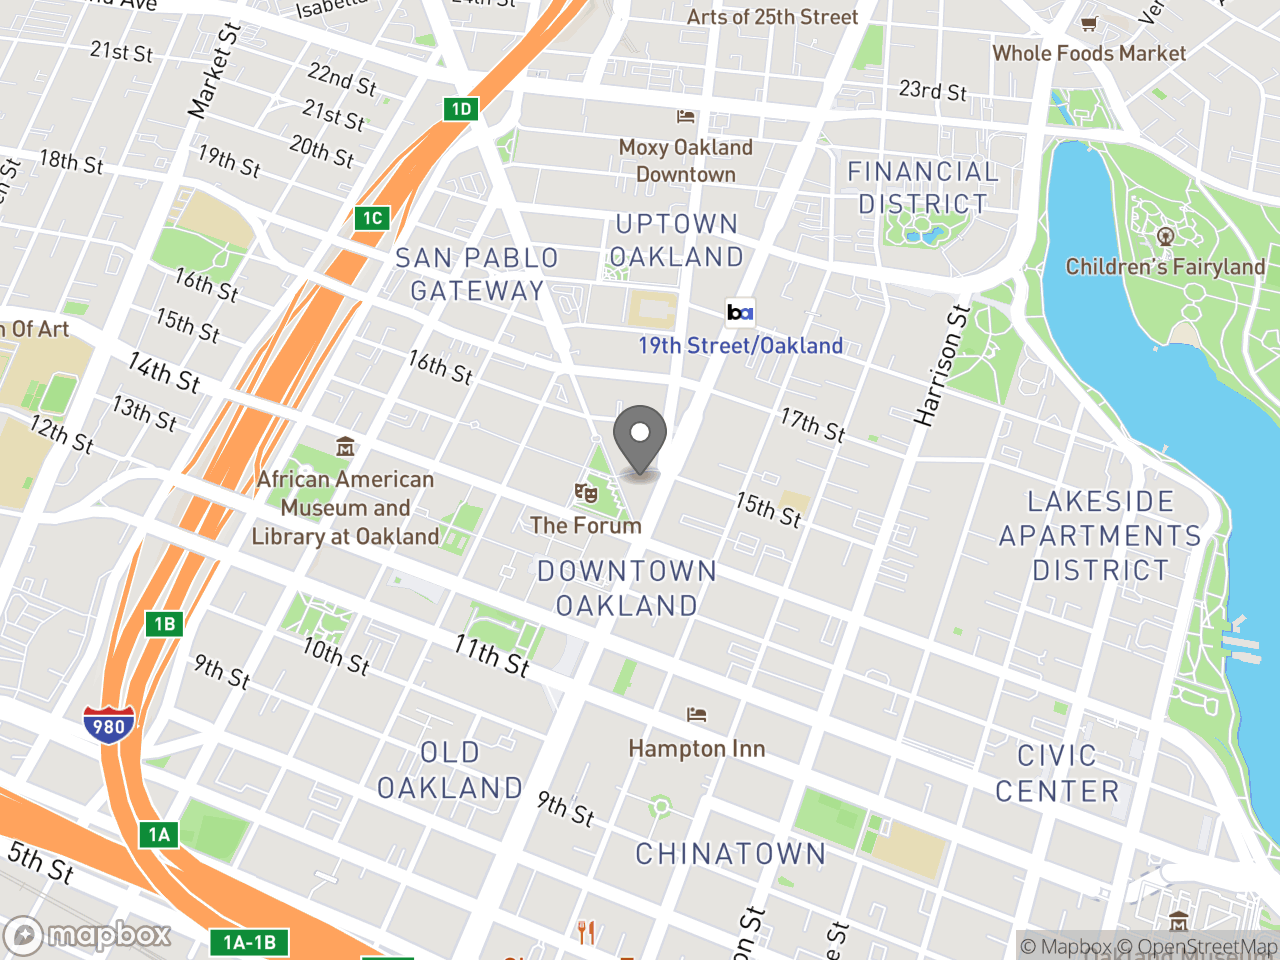 Map location for Oakland Youth Advisory Commission (OYAC), located at City Hall in Oakland, CA 94612